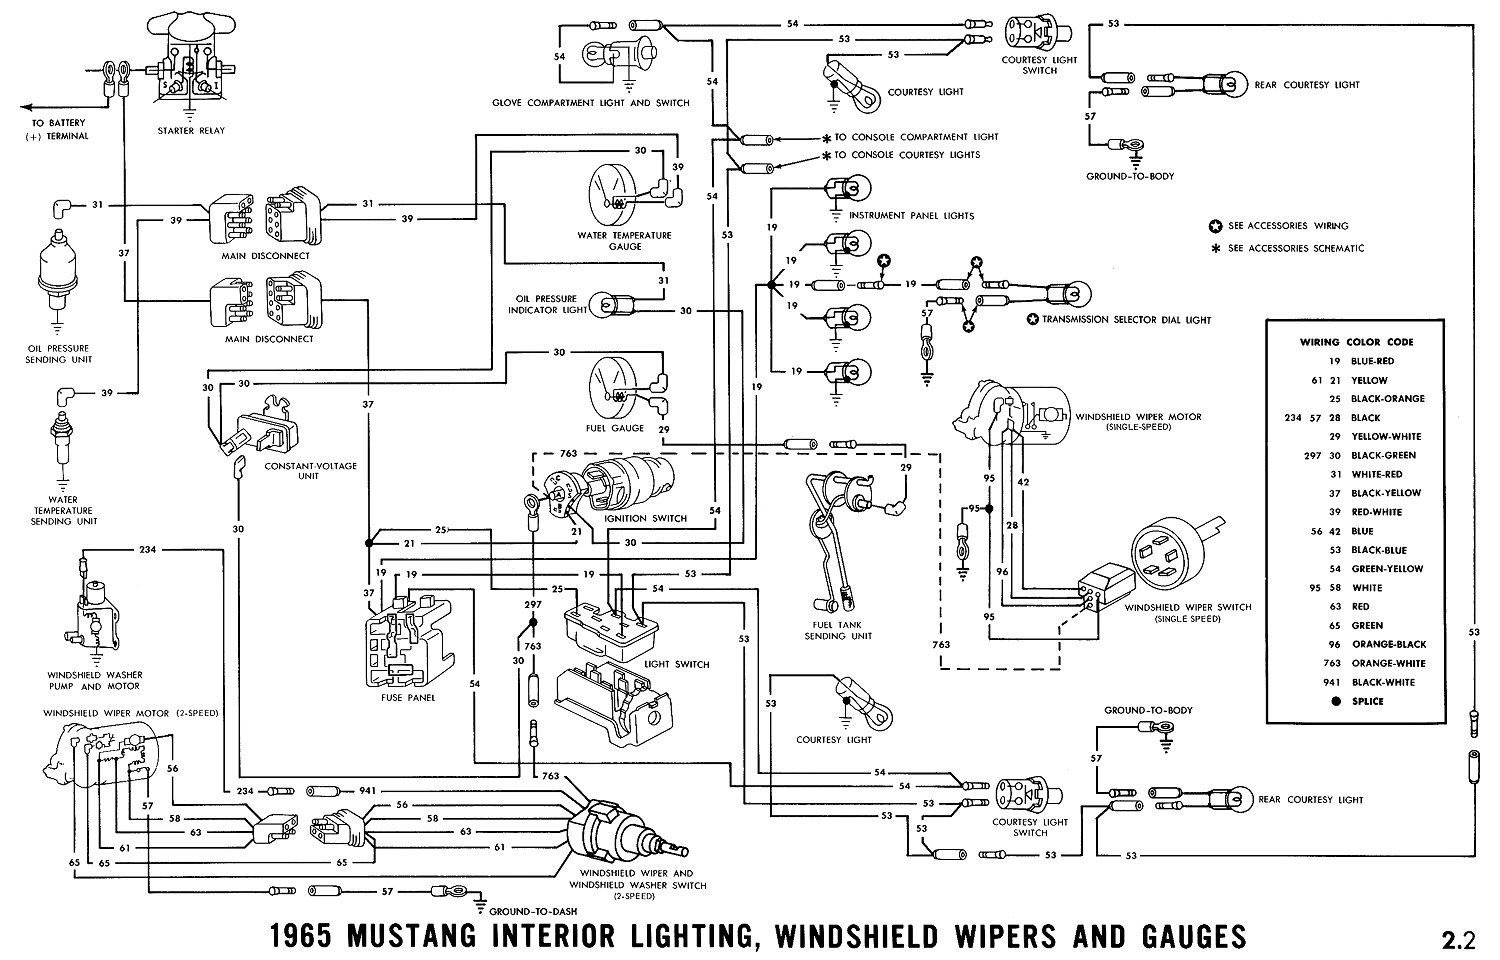 1965g 02 ford mustang turn signal wiring diagram wiring diagram simonand 89 mustang wiring harness at gsmx.co